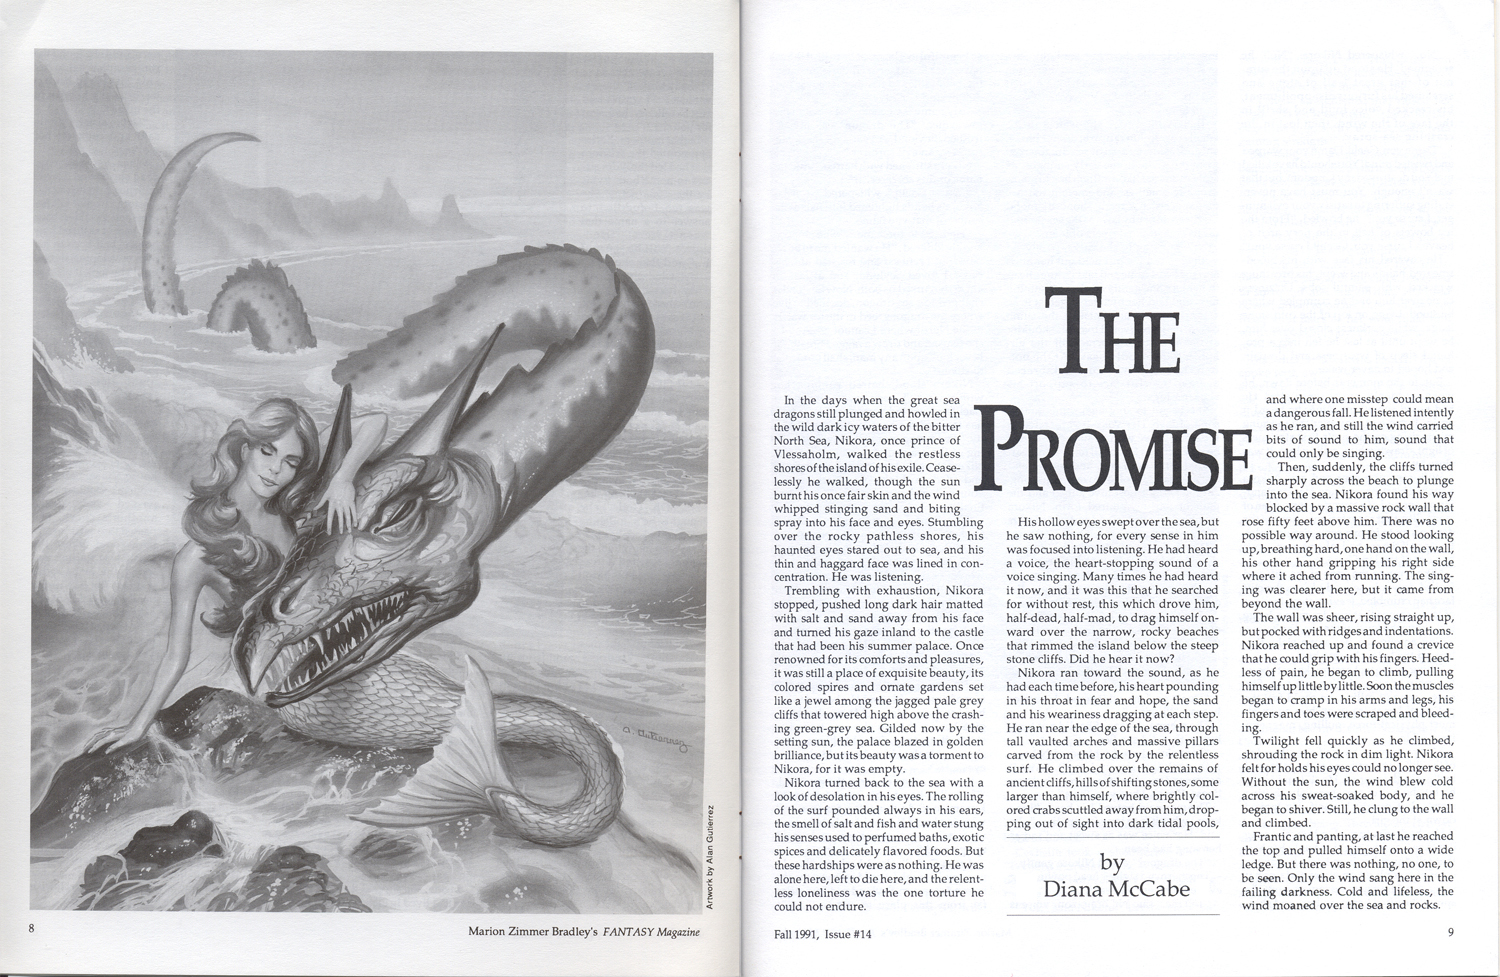 The Promise - pages 1-2